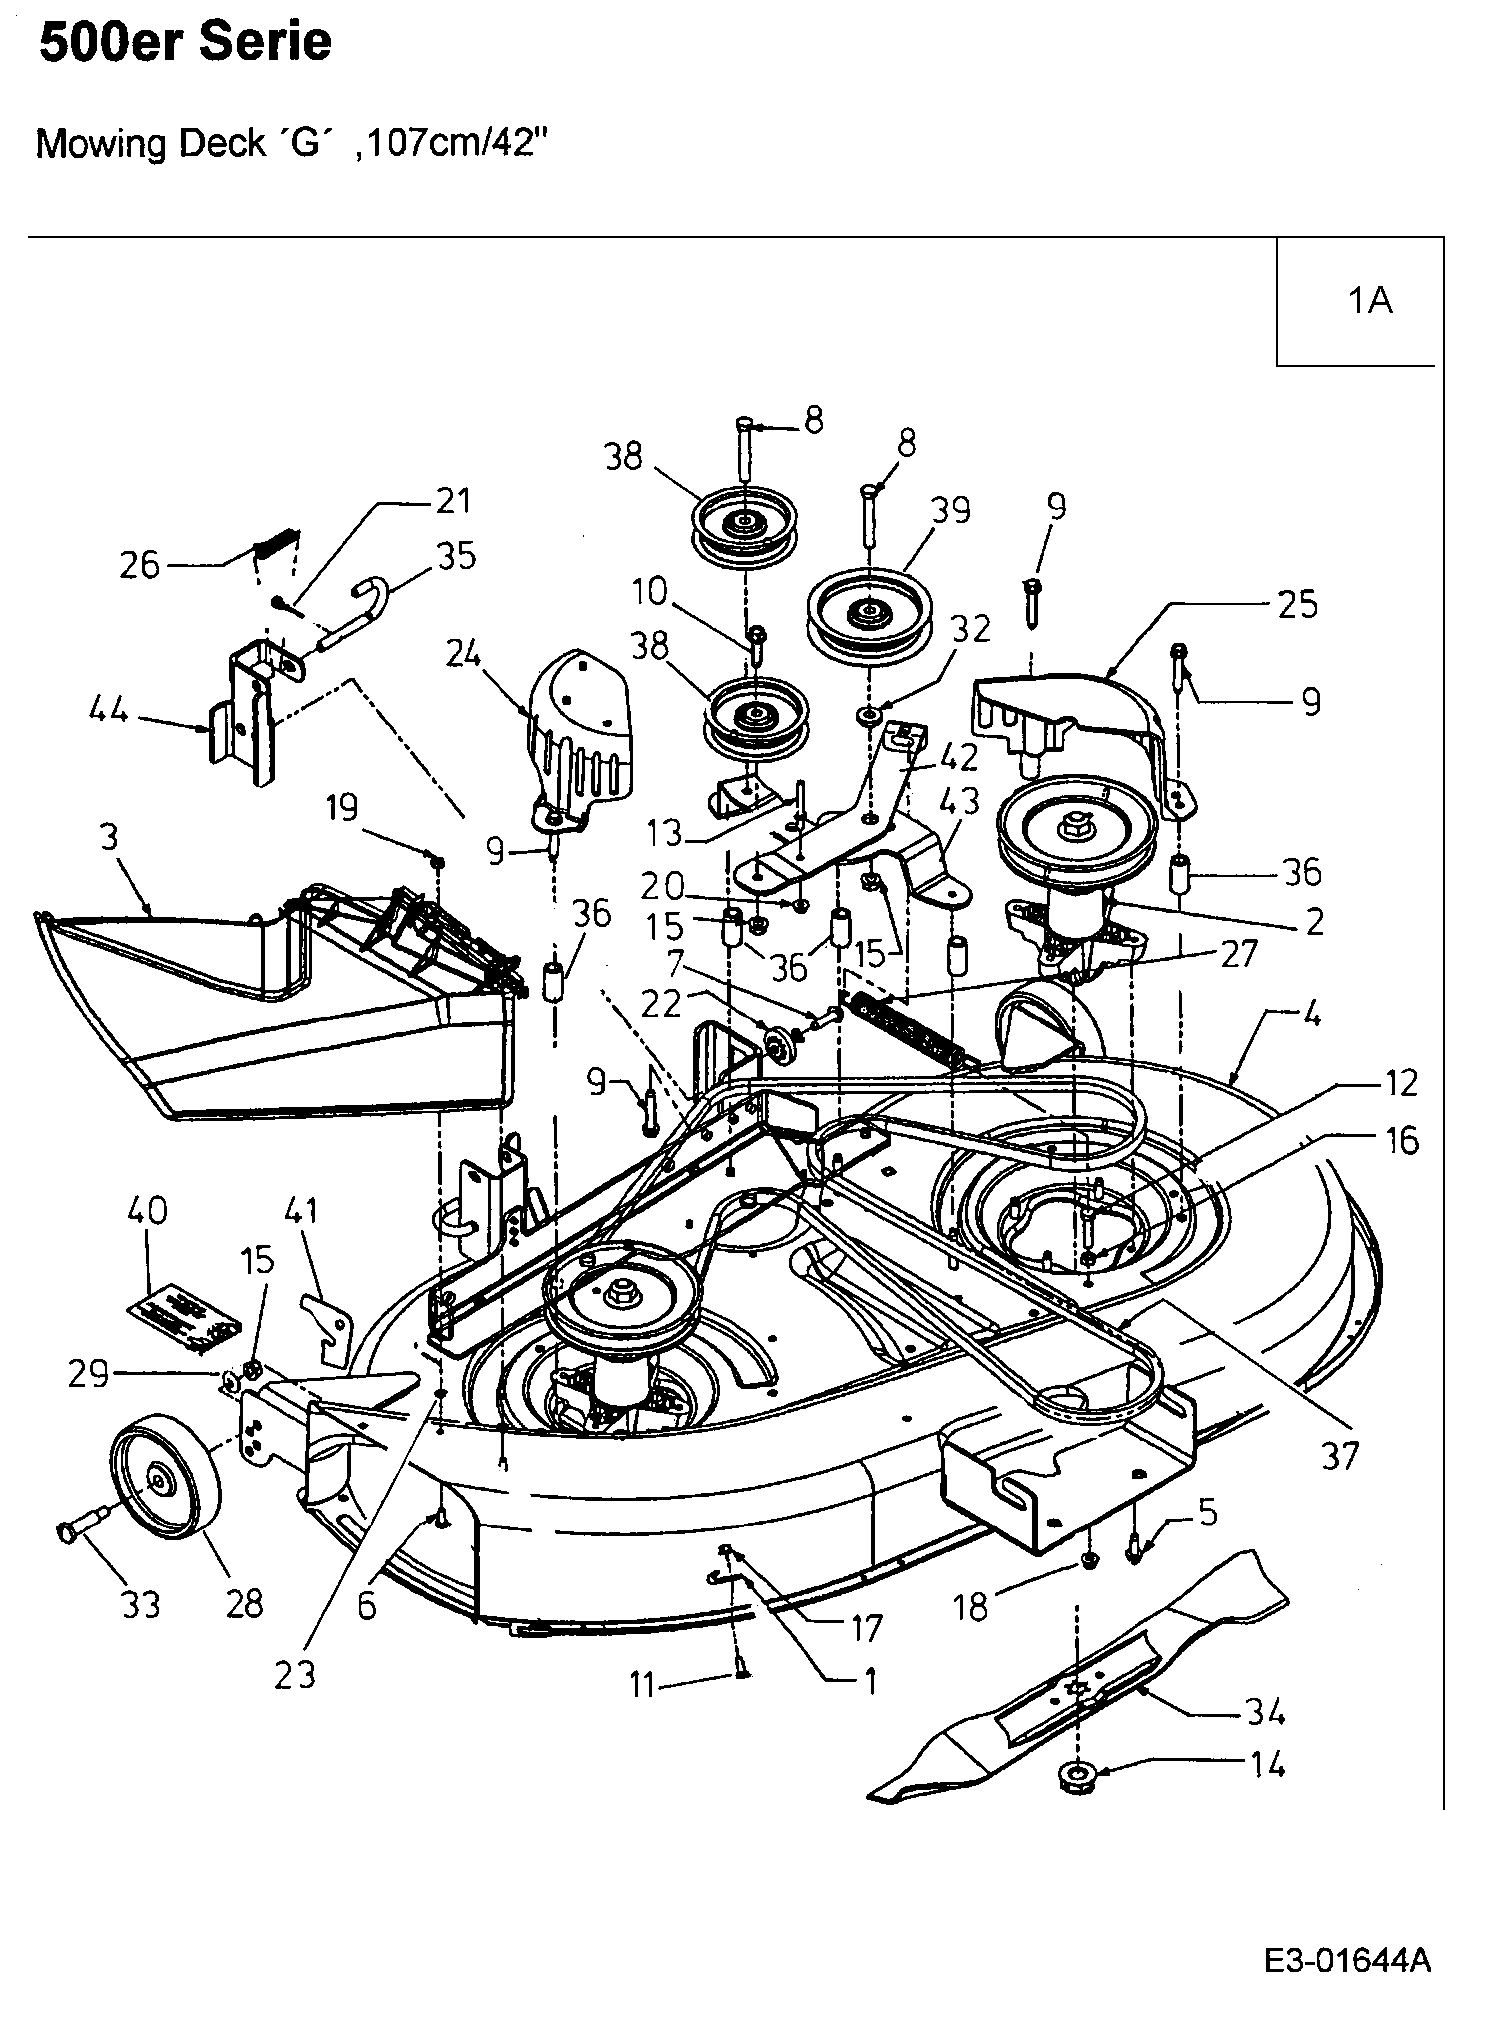 Mtd Wiring Diagram 929 1072 Free For You Lawn Tractor Solenoid Oregon Starter Compatible With Cub Cadet 725 Riding Mower